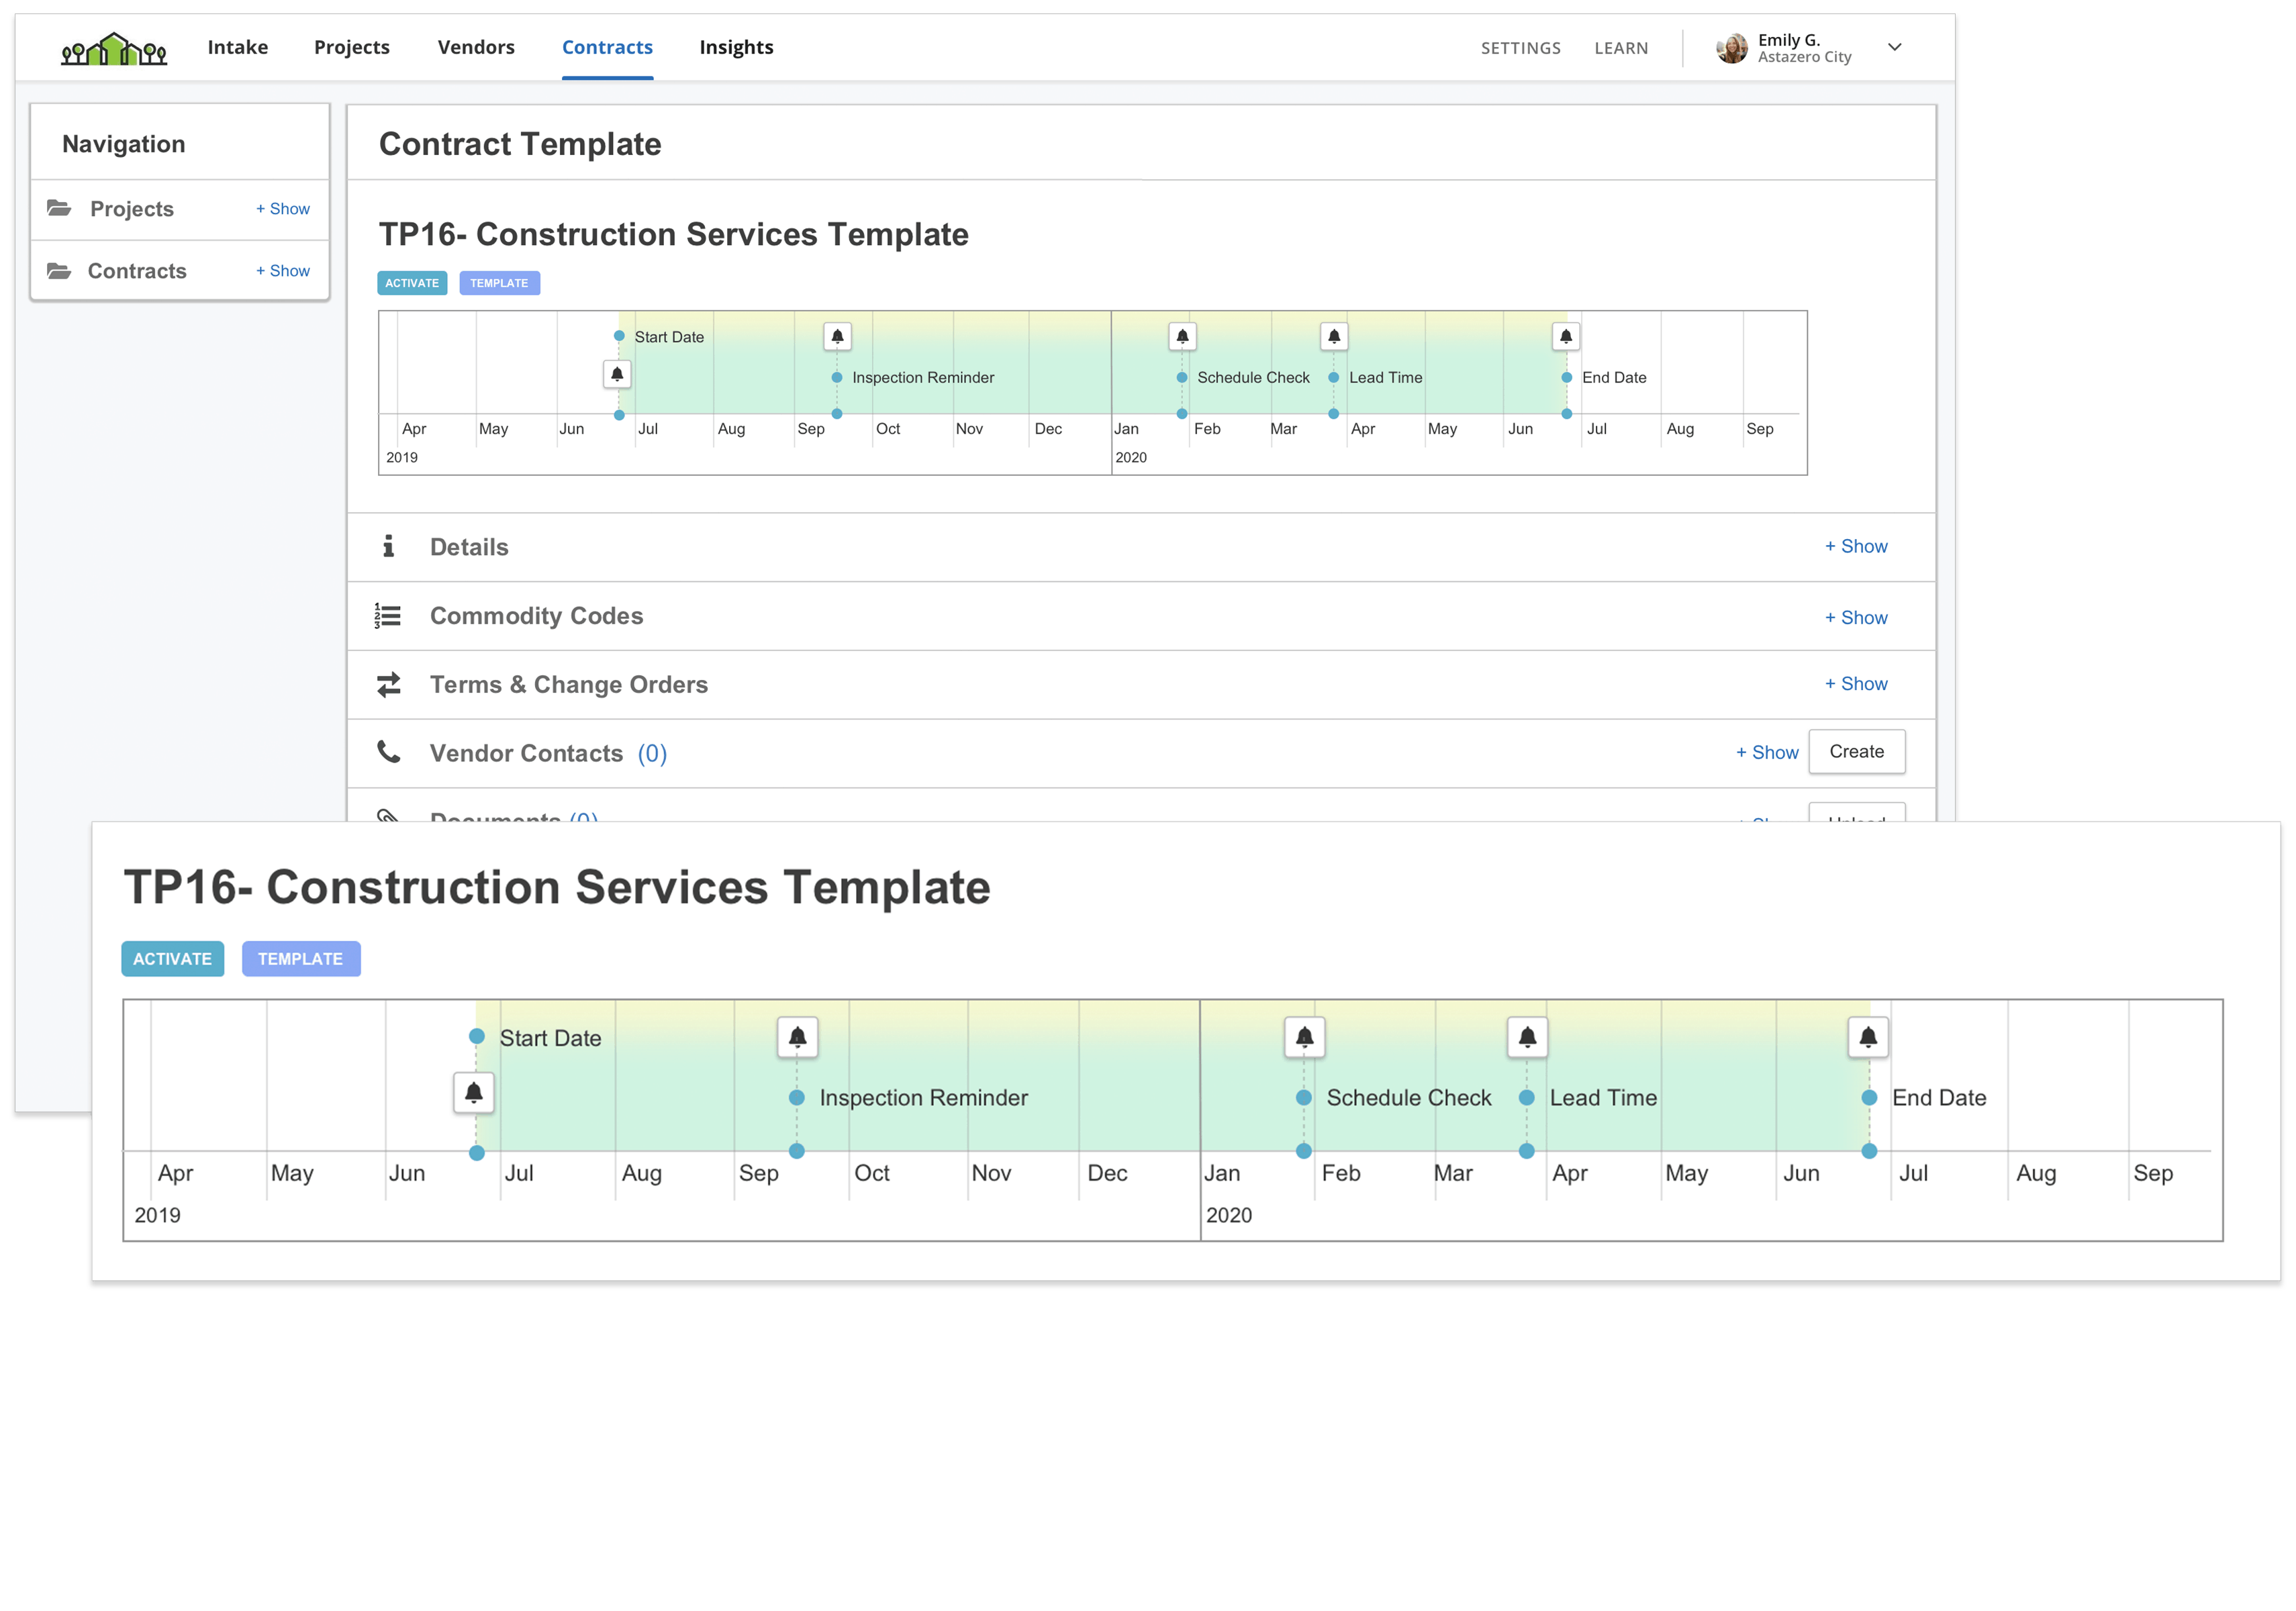 sample product screenshot of contract template in Bonfire